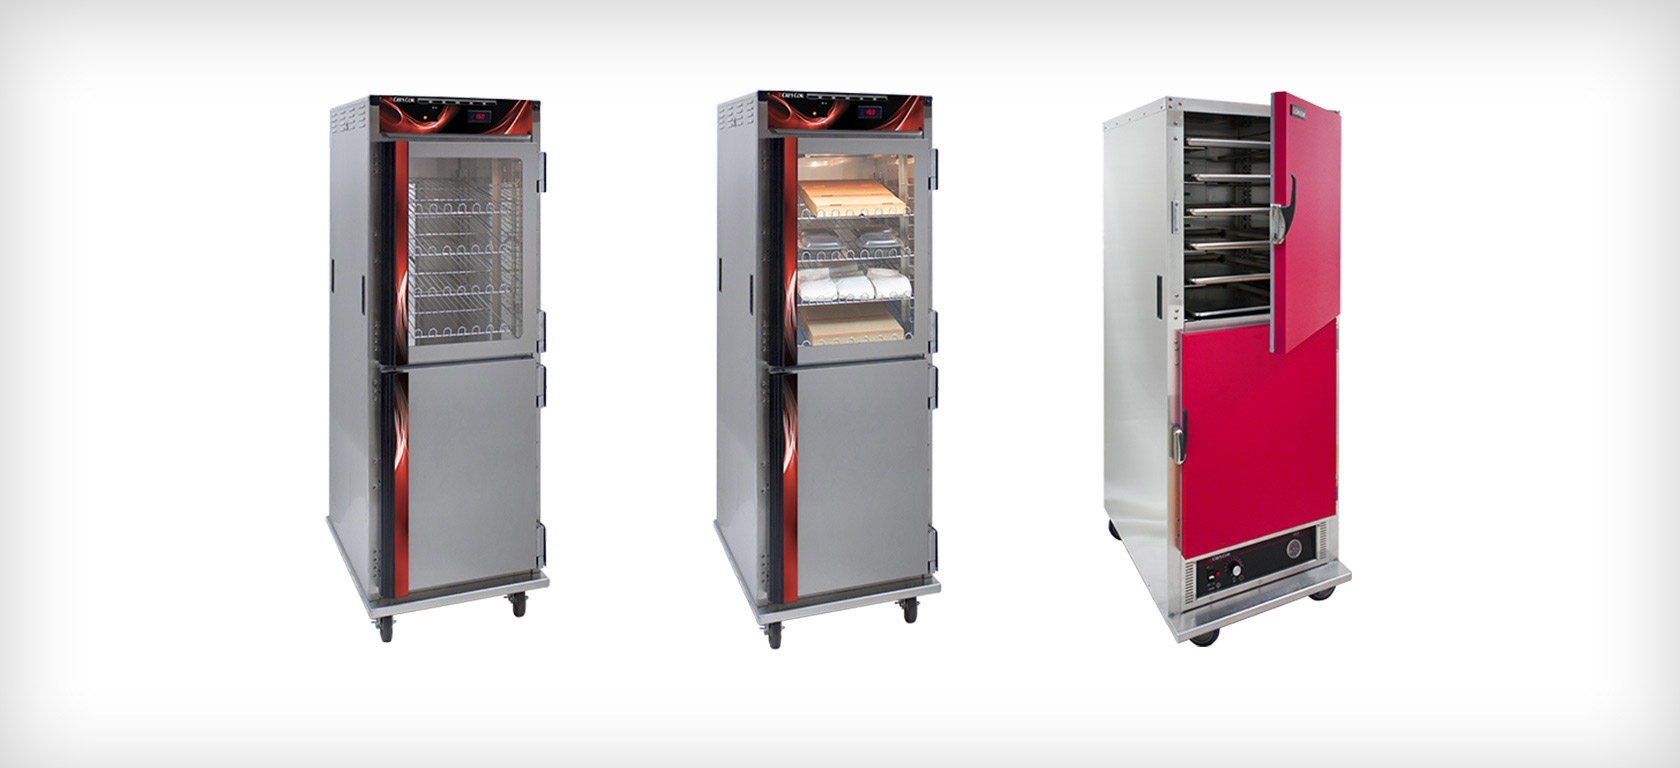 Cres Cor Insulated Hot Cabinets